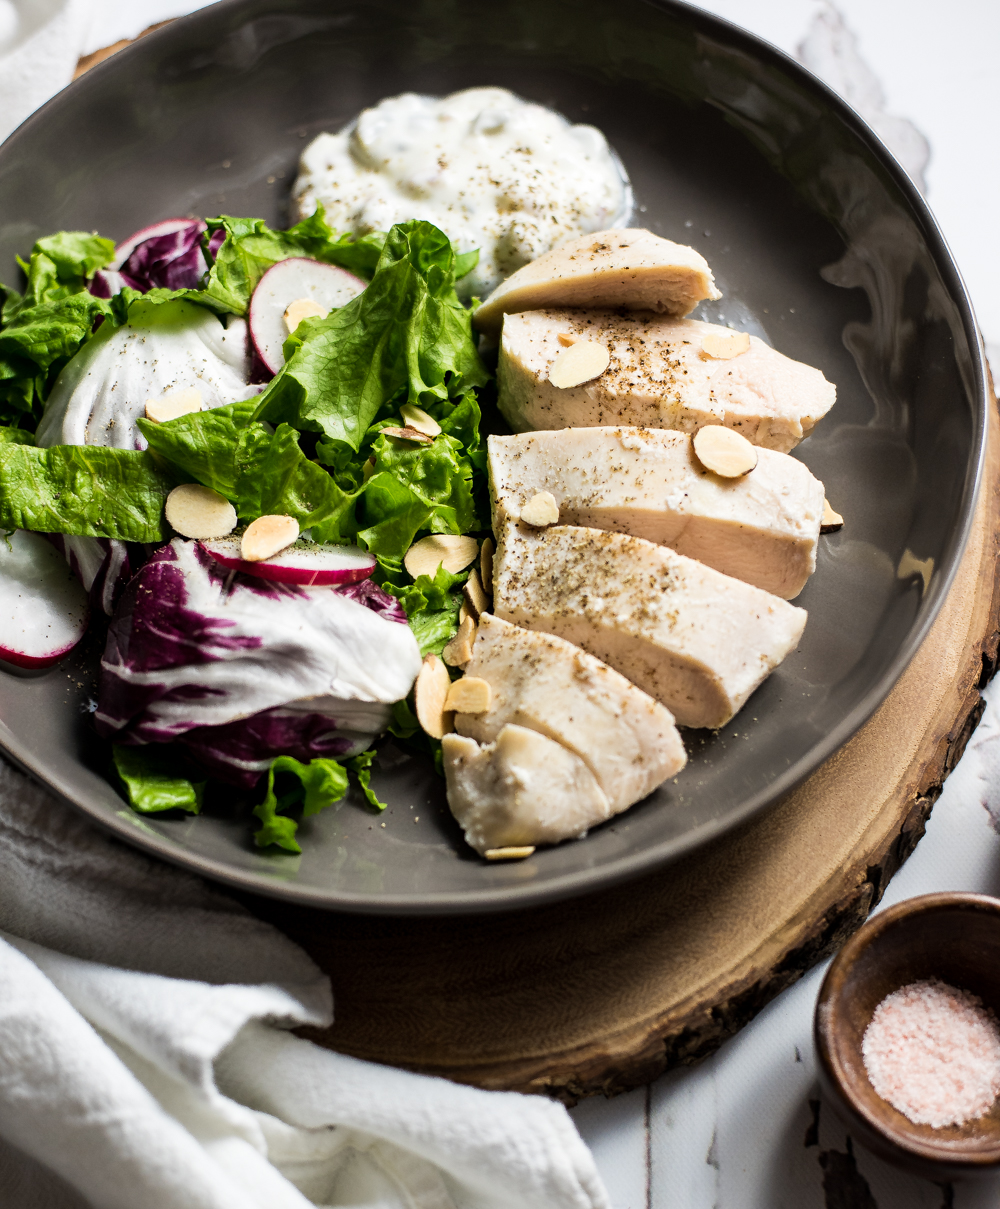 Buttermilk-poached chicken with dressed greens is a simple, yet delicious weeknight dinner recipe option. It is loaded with flavor and nutritional value!